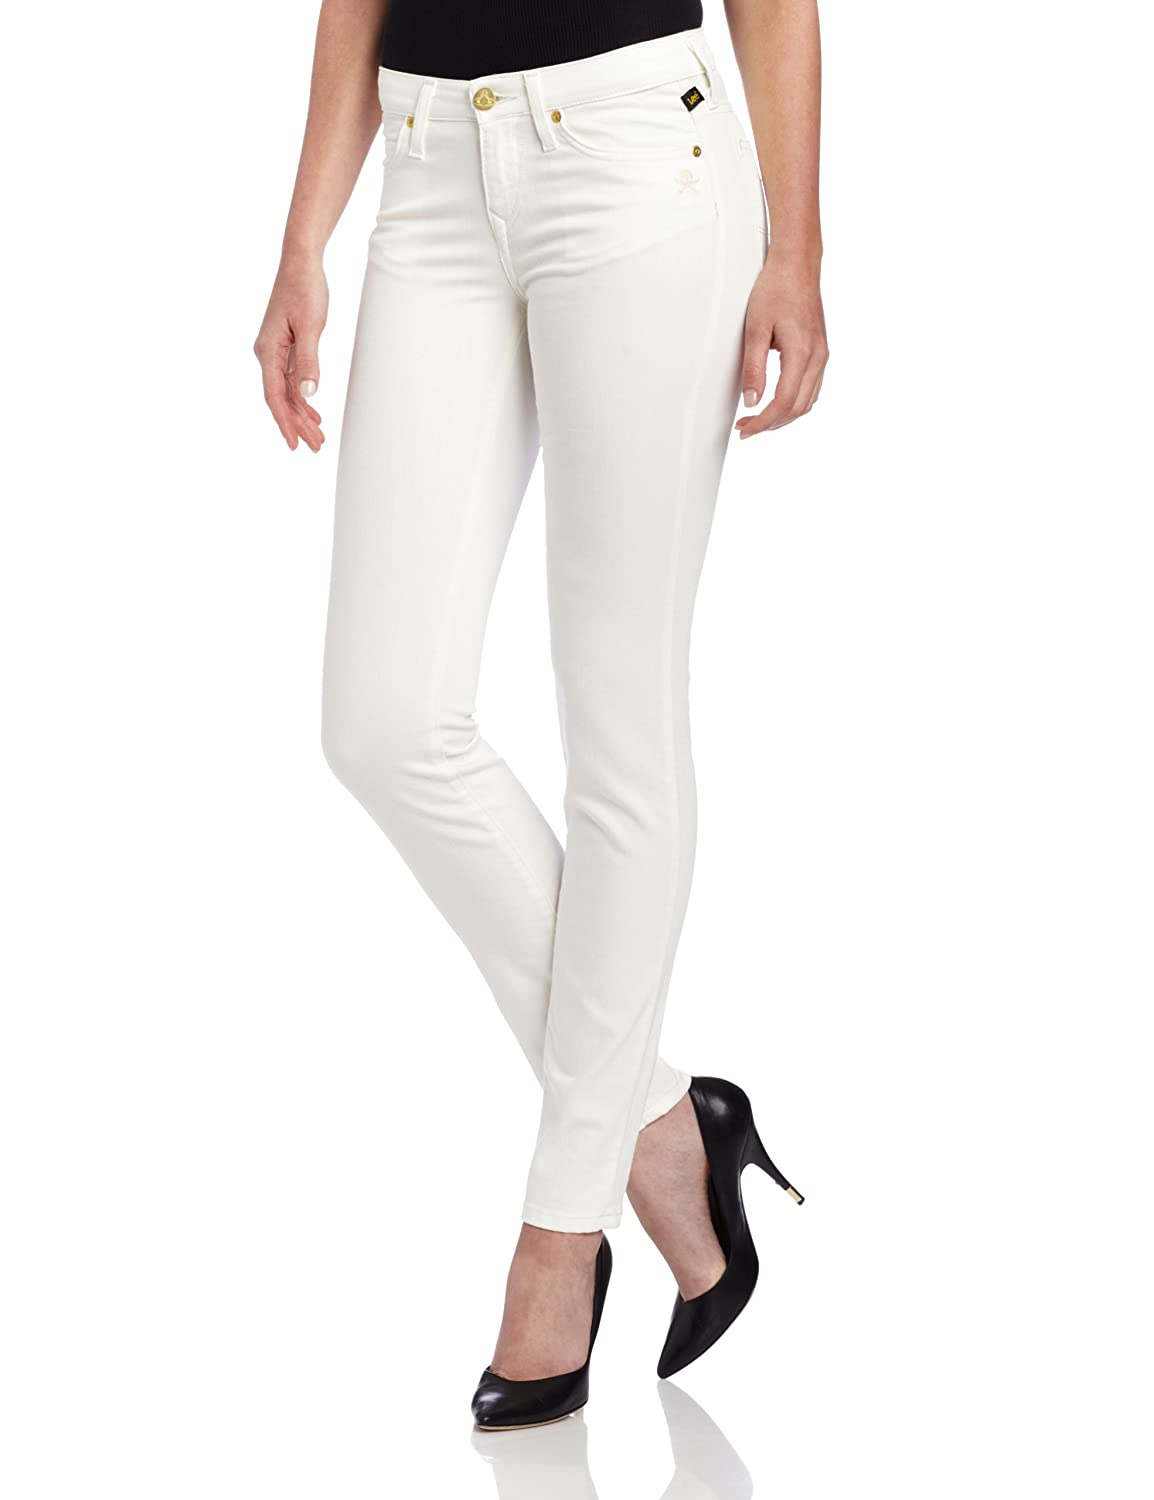 Vivienne Westwood for Lee Women's Skinny Jean in Ecru